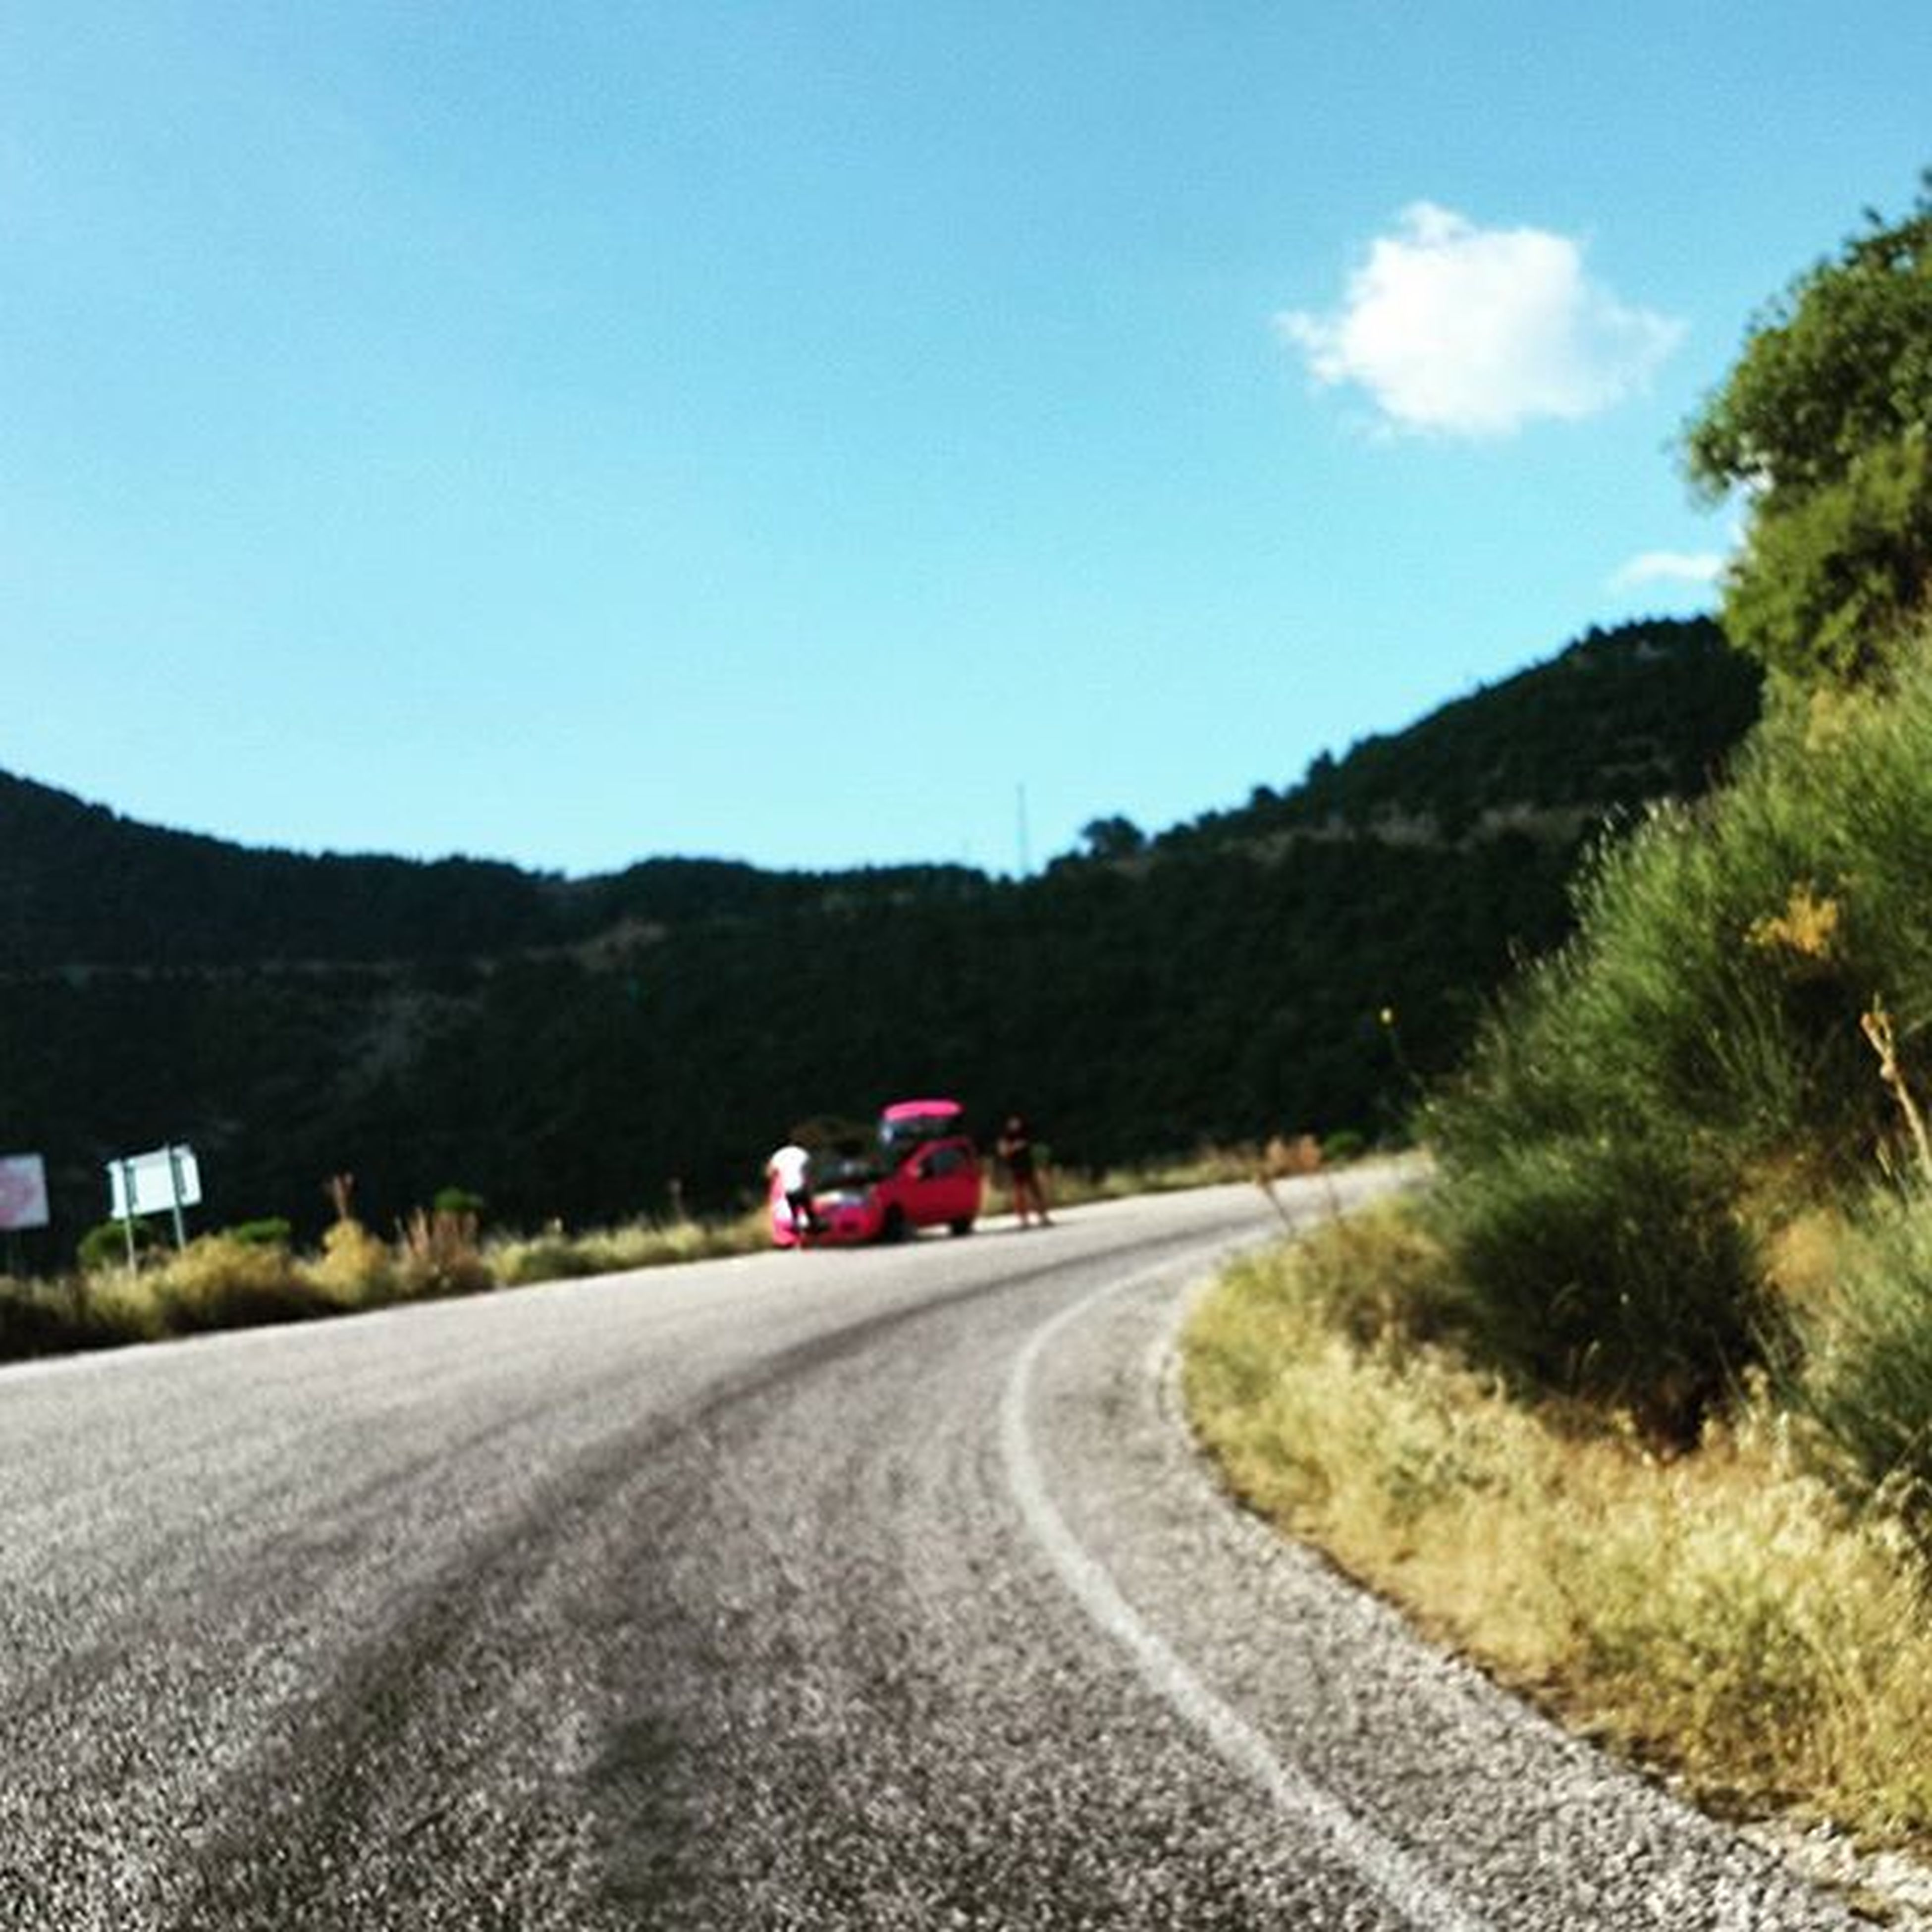 road, transportation, the way forward, country road, mountain, road marking, diminishing perspective, vanishing point, clear sky, sky, landscape, tree, street, empty, empty road, blue, long, car, copy space, countryside